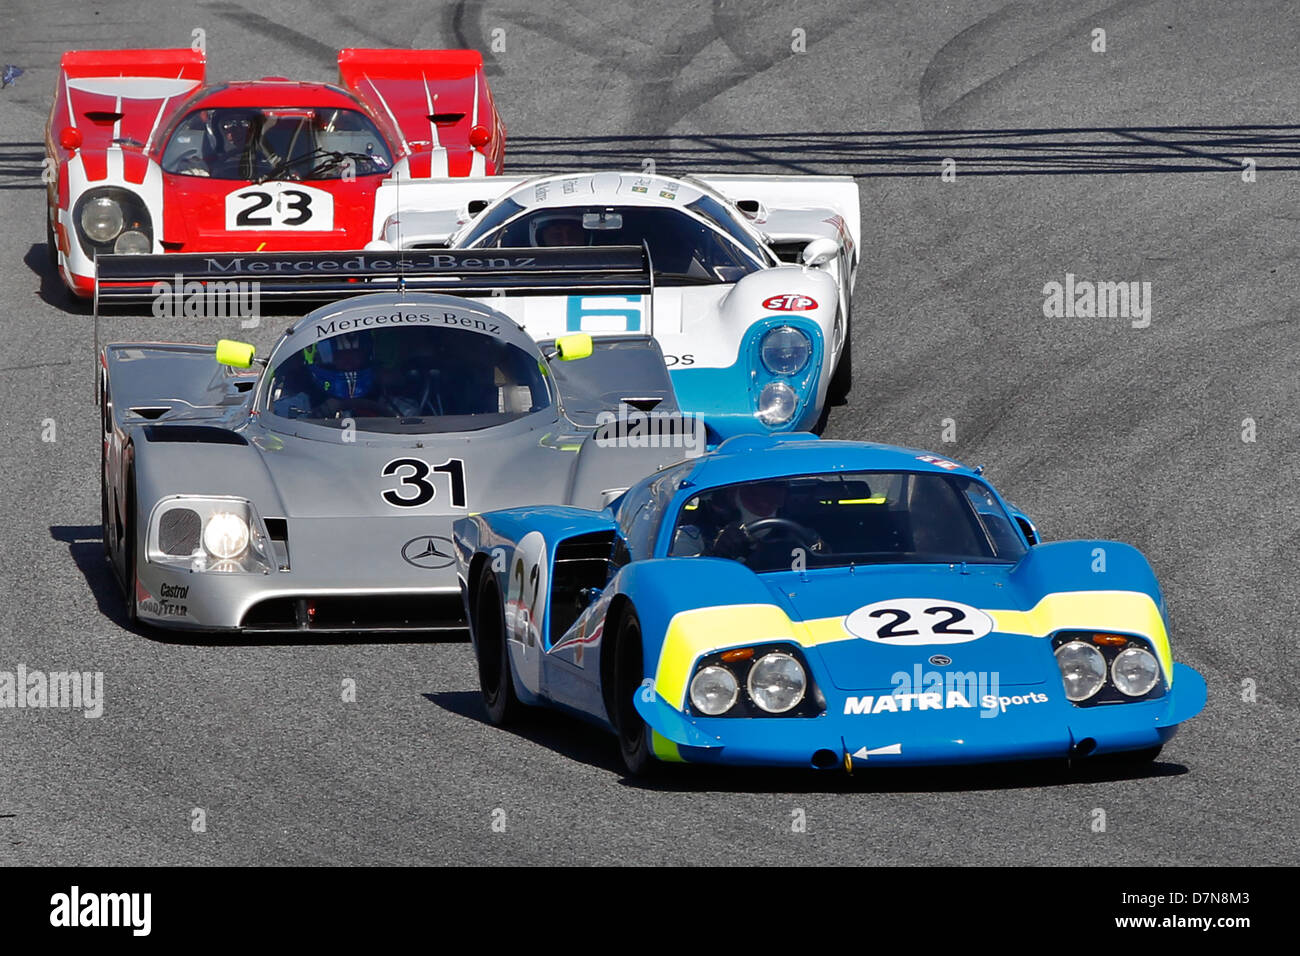 Group C race and Historic Sportscar practice at Barcelona Catalonia Classic Revival, Montmelo circuit, April 2013 Stock Photo